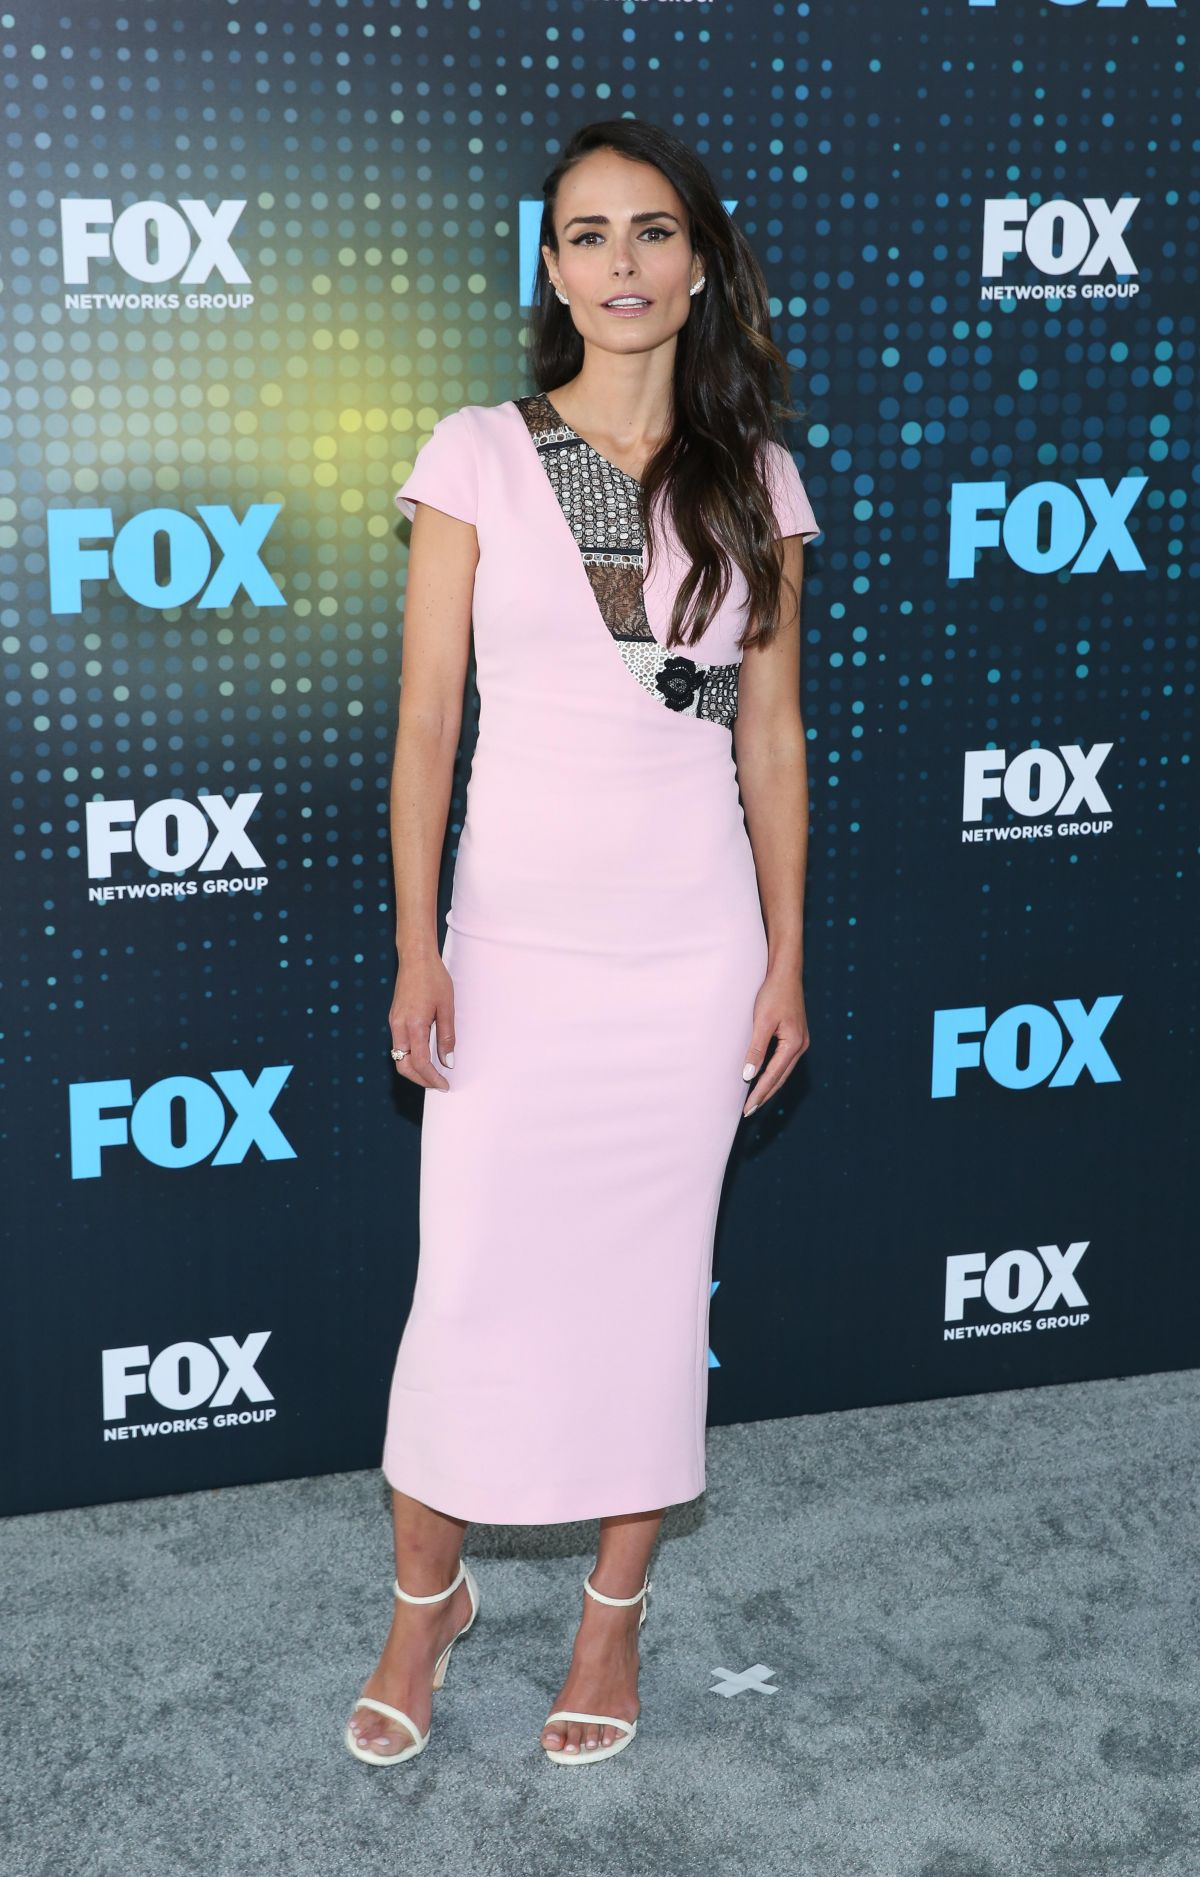 15 Jordana Eggplant 20 1 49: JORDANA BREWSTER At Fox Upfront Presentation In New York